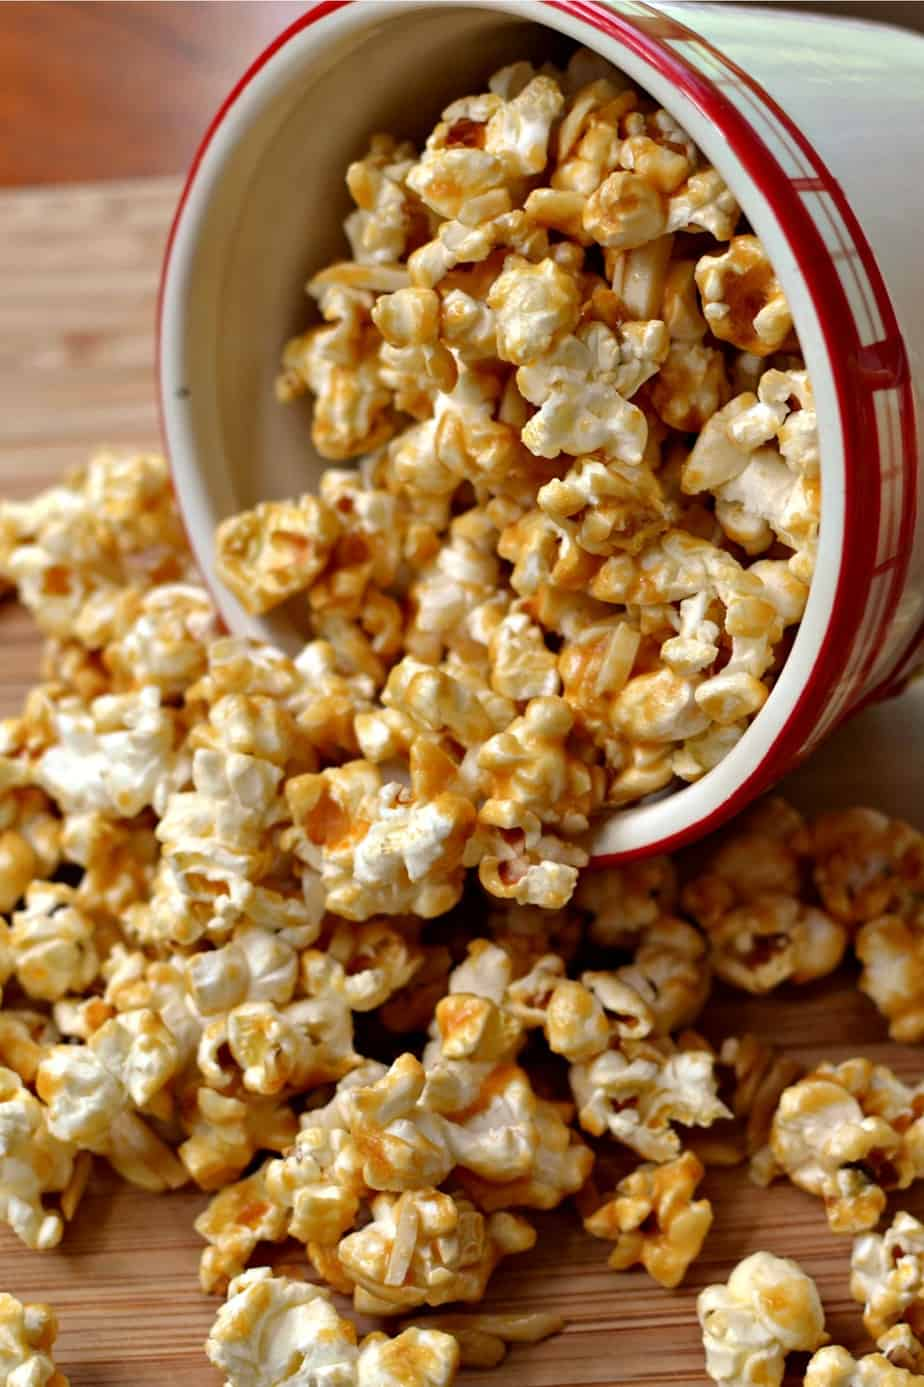 This easy Caramel Popcorn combines freshly microwaved popcorn with homemade caramel and almond slivers.